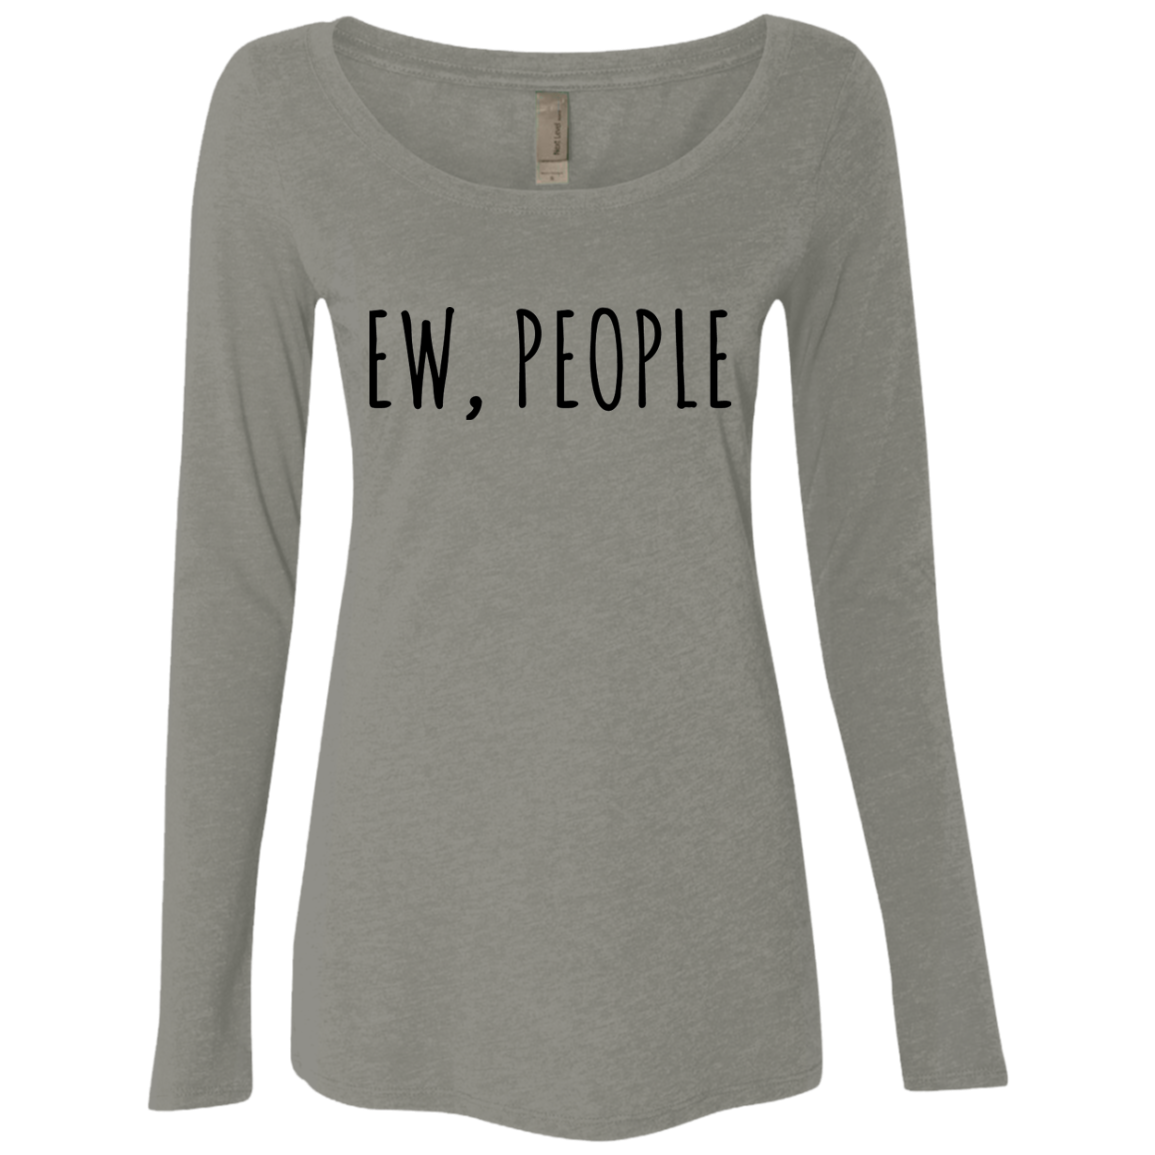 Ew People Women's Long Sleeve Tee - Trendy Tees